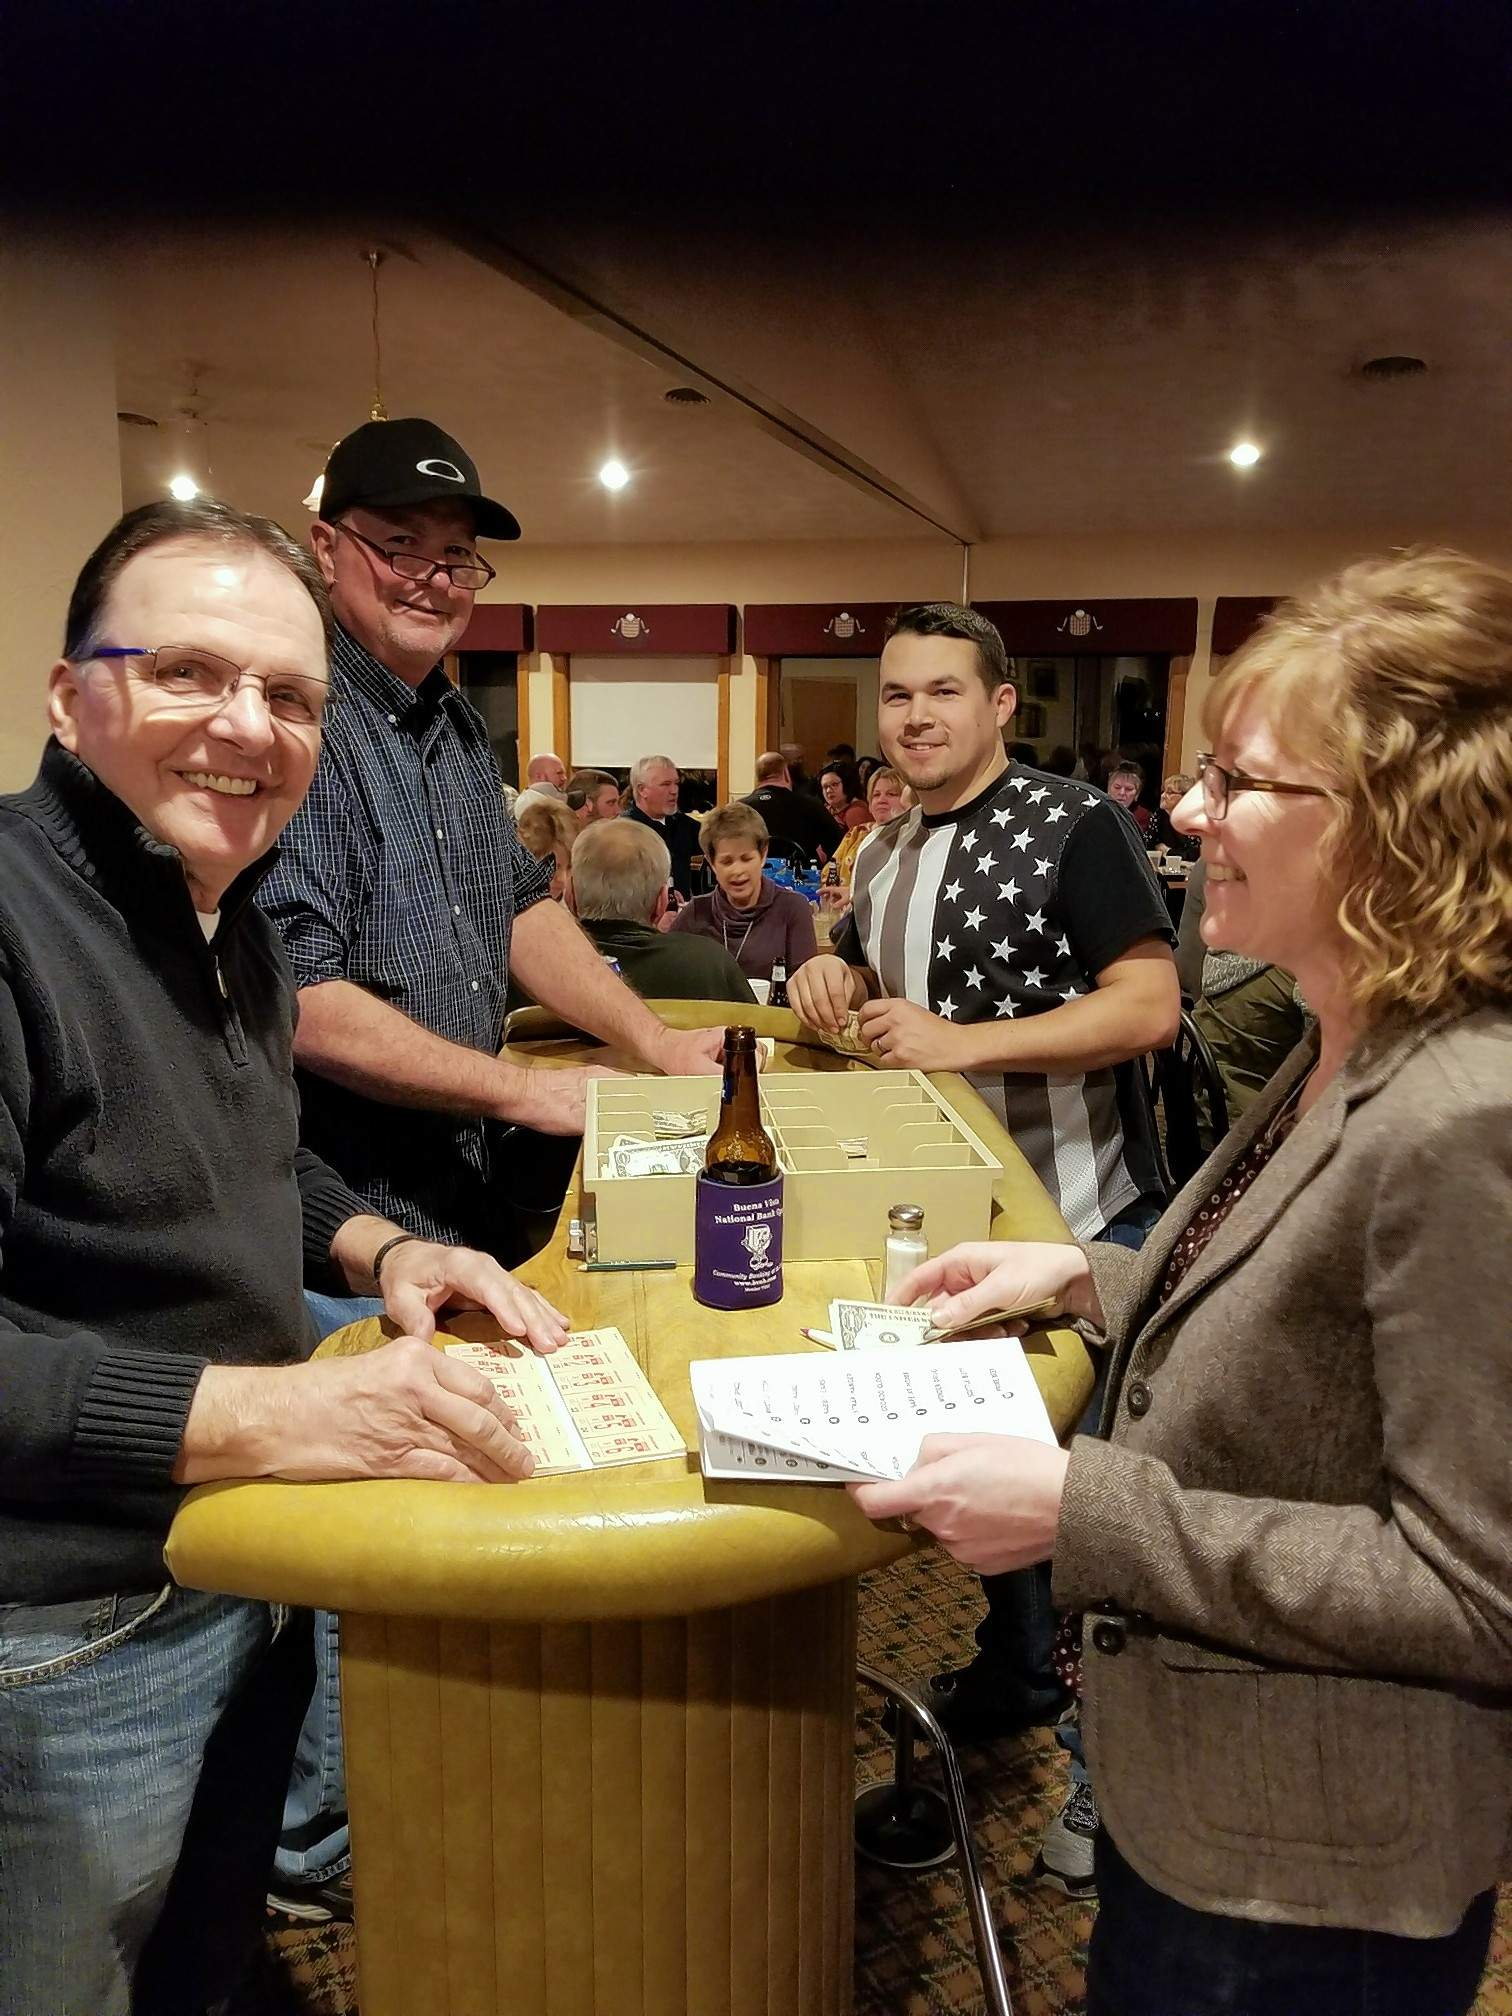 The Chester Chamber of Commerce held its first Night at the Race event Feb. 1 at the Chester Country Club. Proceeds were earmarked for the chamber scholarship fund. At left, Ron Nitszche and Mitch Eggemeyer man the betting table for the evening.